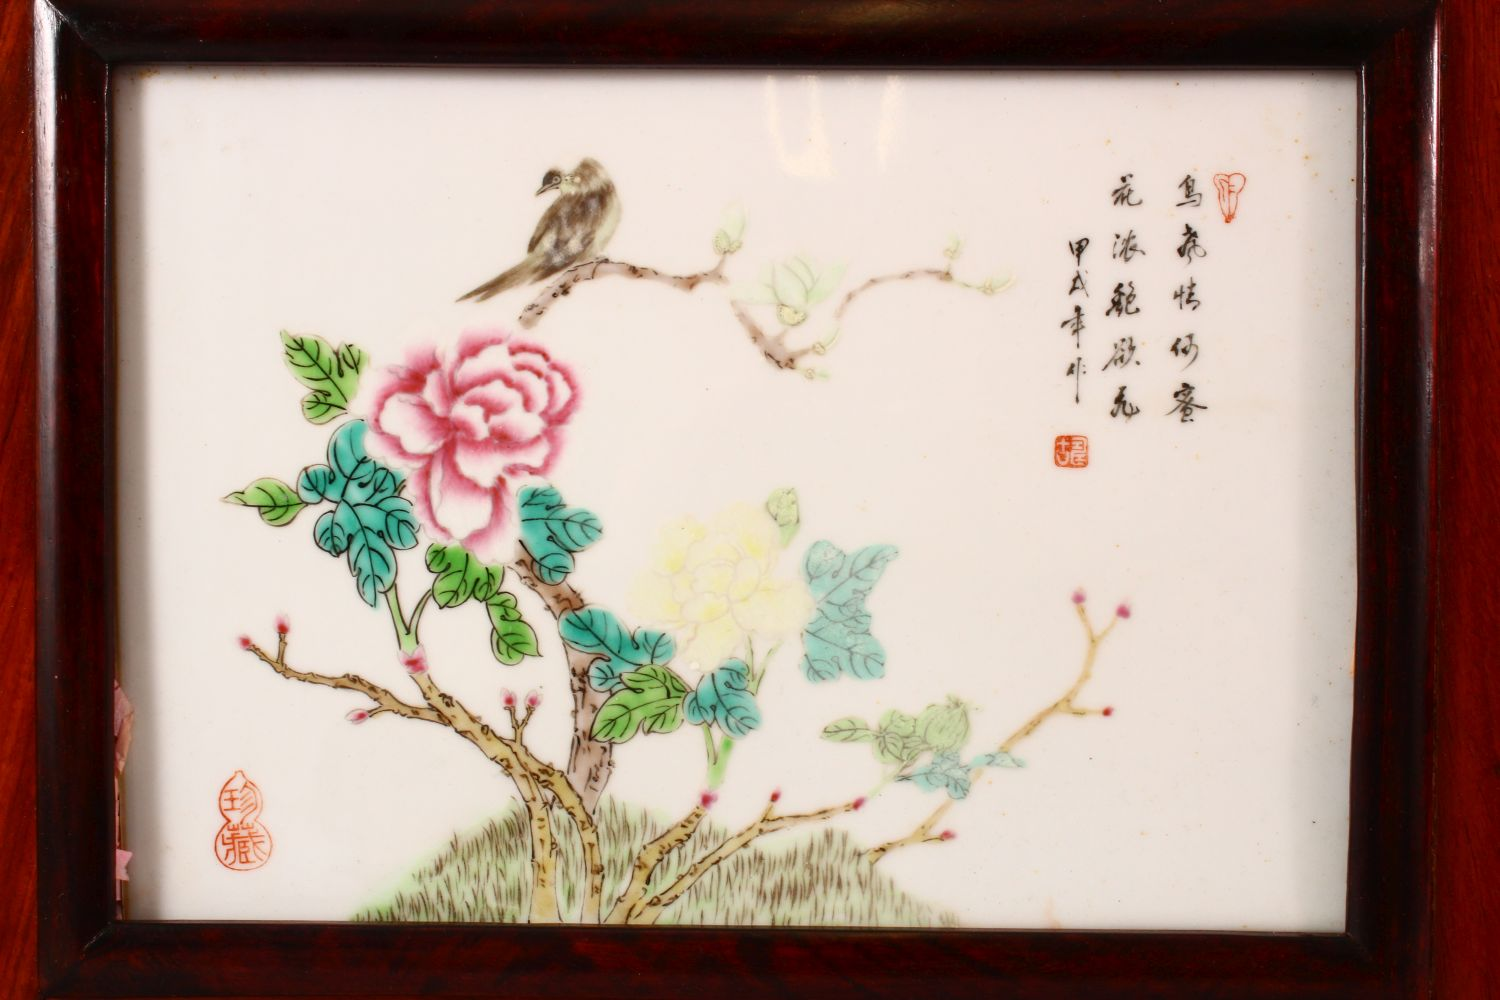 A PAIR OF CHINESE FAMILLE ROSE PORCELAIN PANELS, depicting birds and flora, mother and child, each - Image 2 of 4